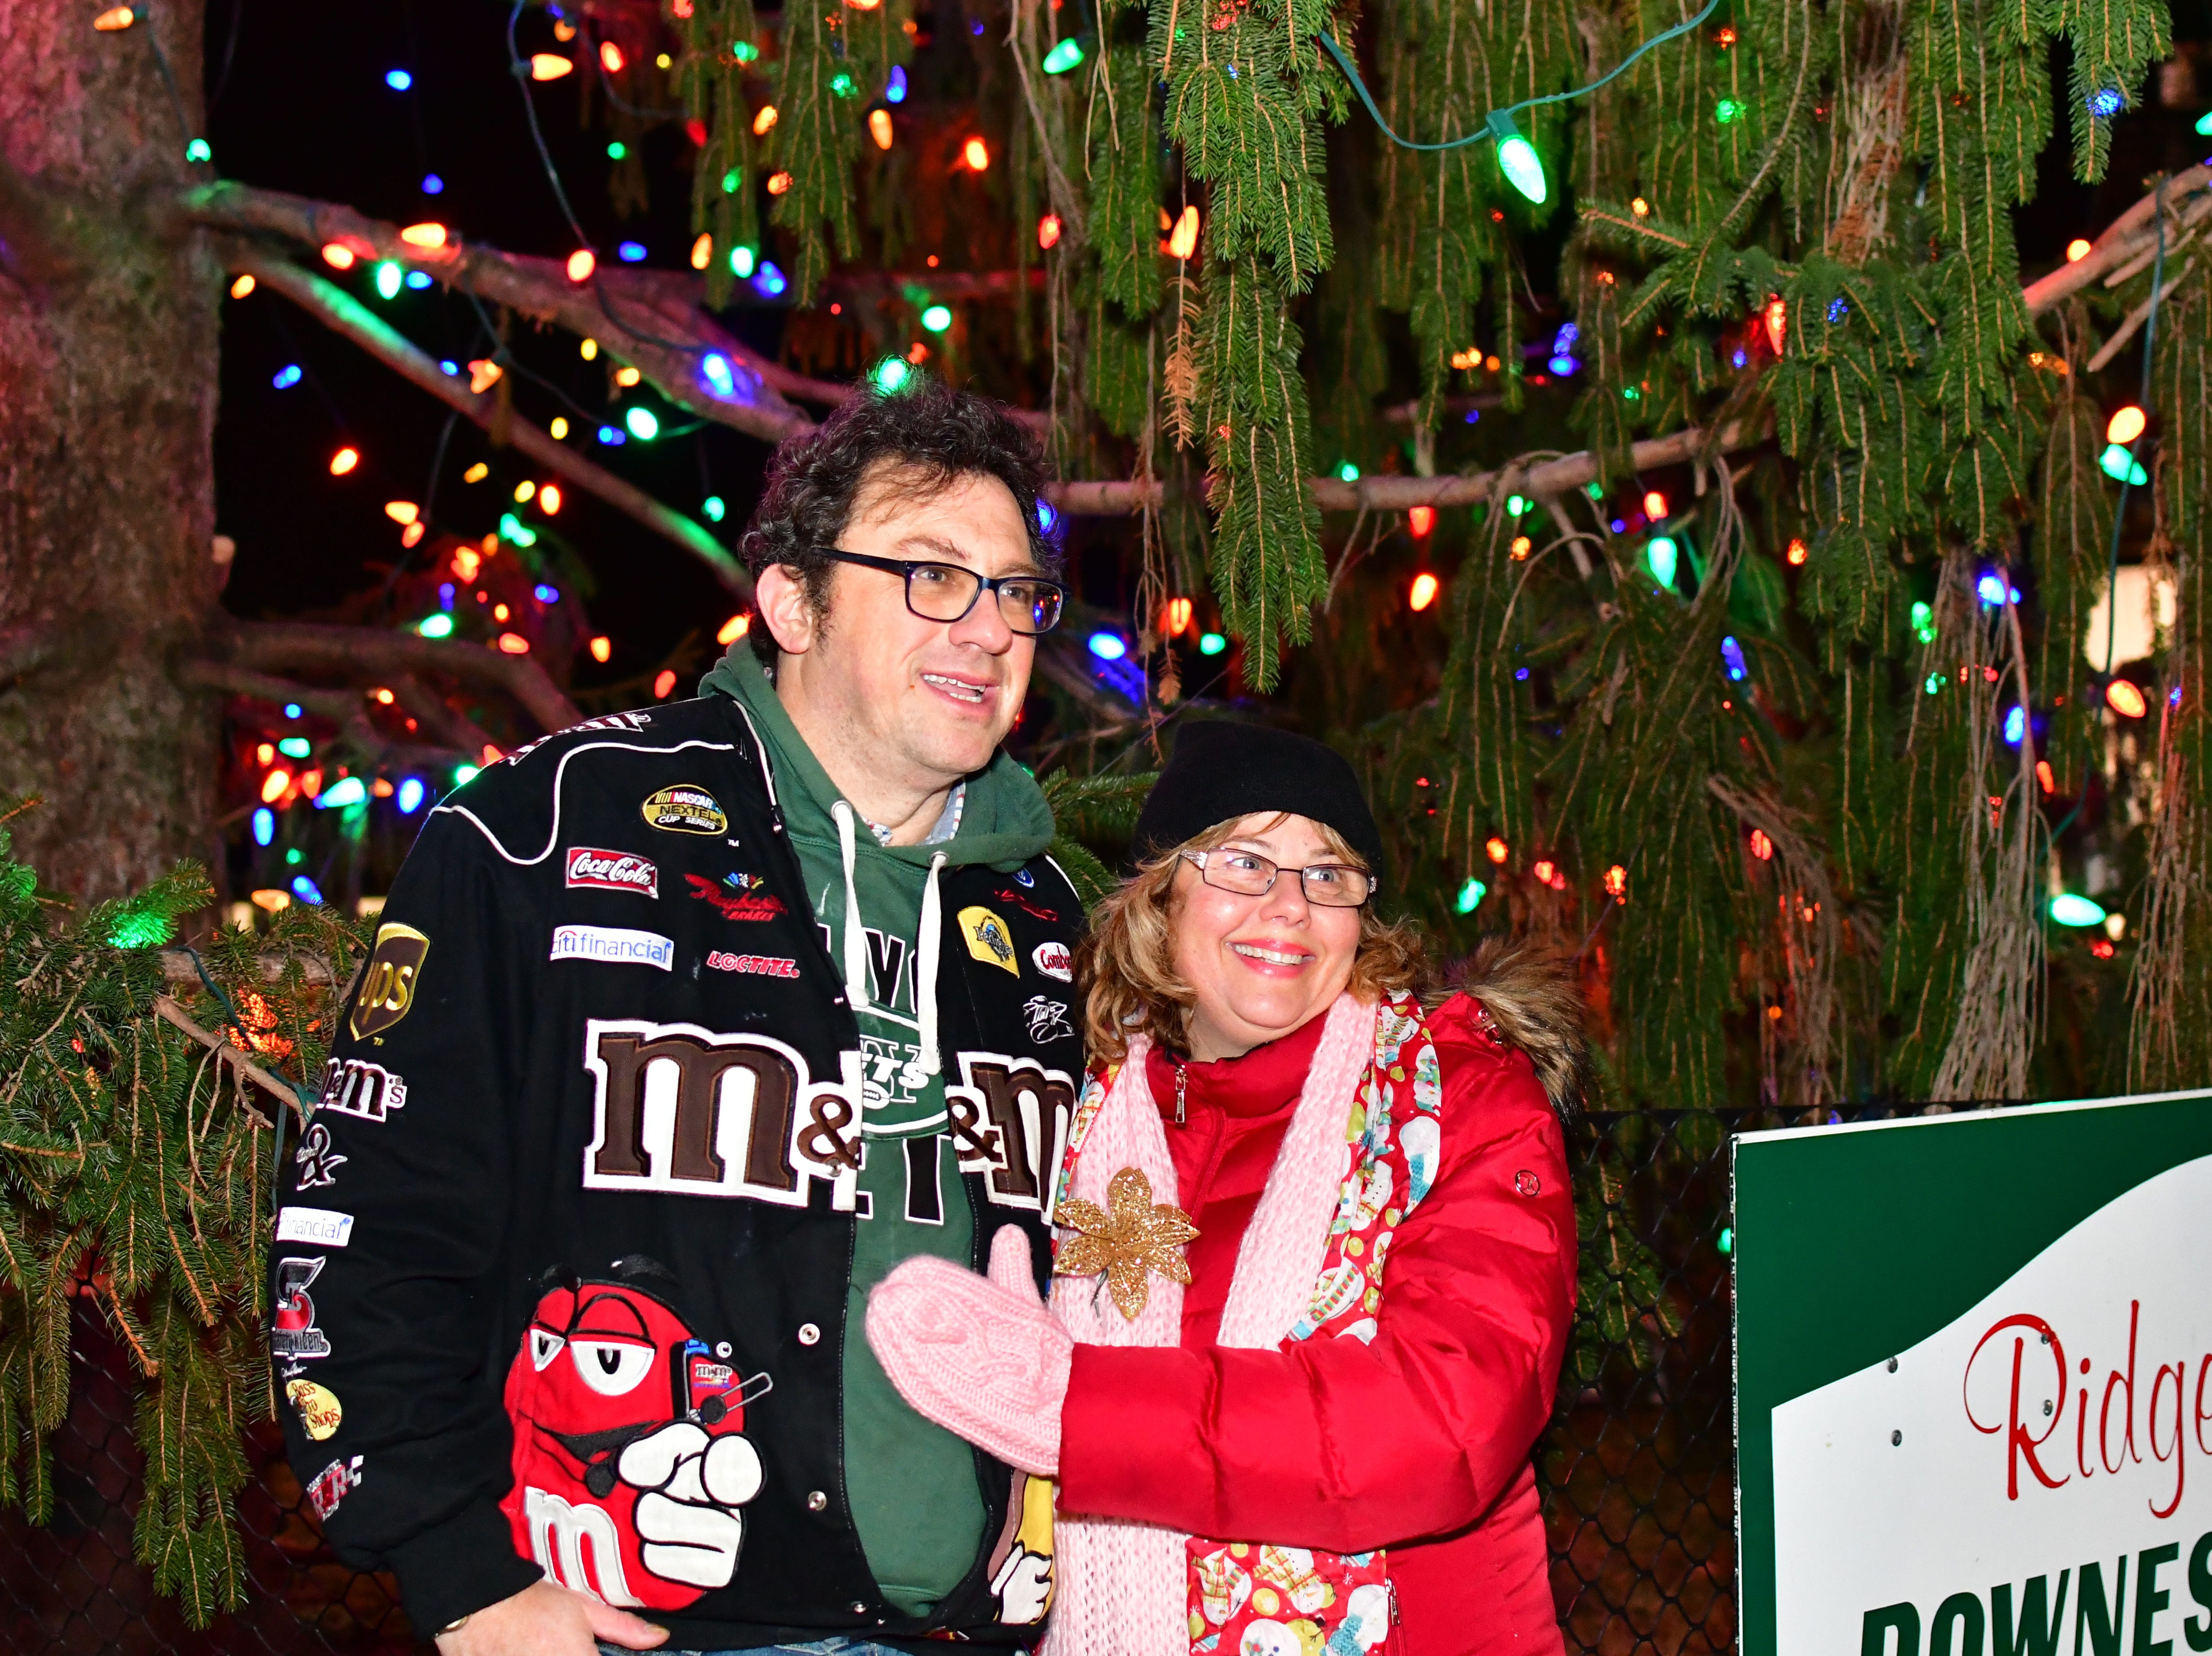 Wayne Elcher, left, and Iris Elcher, standing by the newly lit Christmas tree.  Holiday festivities along East Ridgewood Avenue in Ridgewood on Nov. 30.